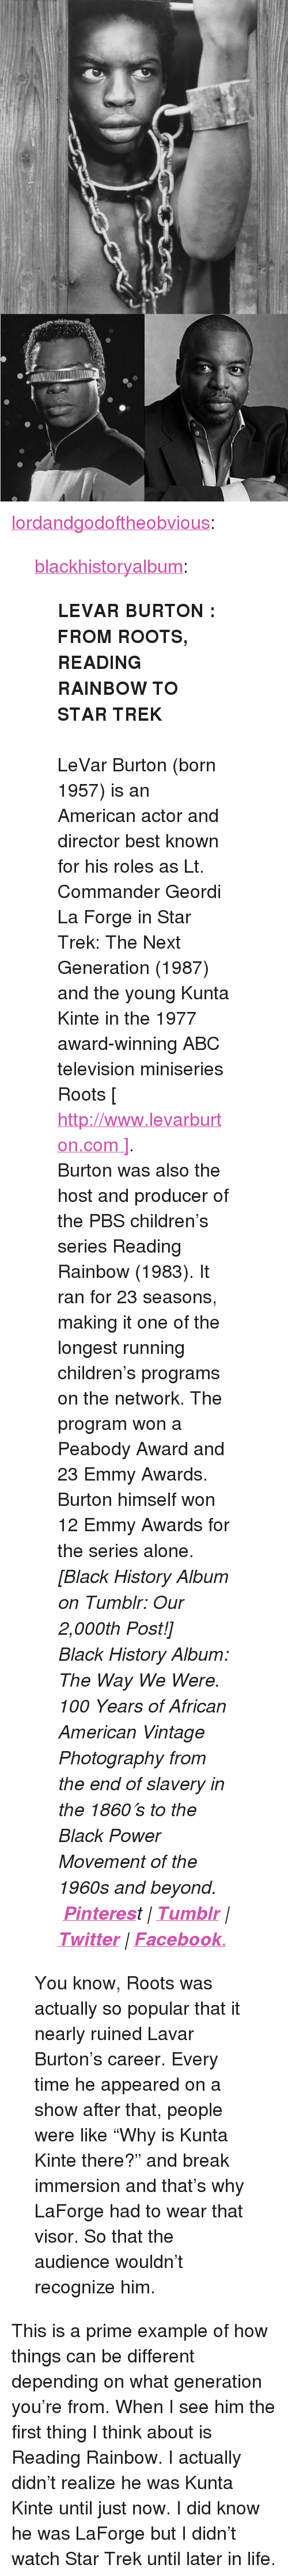 """reading rainbow: <p><a href=""""http://lordandgodoftheobvious.tumblr.com/post/159844036323/blackhistoryalbum-levar-burton-from-roots"""" class=""""tumblr_blog"""">lordandgodoftheobvious</a>:</p>  <blockquote><p><a href=""""https://blackhistoryalbum.tumblr.com/post/159837957925/levar-burton-from-roots-reading-rainbow-to-star"""" class=""""tumblr_blog"""">blackhistoryalbum</a>:</p> <blockquote> <p><b>LEVAR BURTON : FROM ROOTS, READING RAINBOW TO STAR TREK</b><br/><br/>LeVar Burton (born 1957) is an American actor and director best known for his roles as Lt. Commander Geordi La Forge in Star Trek: The Next Generation (1987) and the young Kunta Kinte in the 1977 award-winning ABC television miniseries Roots [ <a href=""""http://www.levarburton.com/"""">http://www.levarburton.com ]</a>. <br/></p> <p>Burton was also the host and producer of the PBS children's series Reading Rainbow (1983). It ran for 23 seasons, making it one of the longest running children's programs on the network. The program won a Peabody Award and 23 Emmy Awards. Burton himself won 12 Emmy Awards for the series alone.<i><i><br/></i></i></p> <p><i>[Black History Album on Tumblr: Our 2,000th Post!]</i></p> <p><i><i>Black History Album: The</i> Way We Were. <i>100 Years of African American Vintage  <i>Photography from the end of slavery in the 1860′s to the Black Power Movement of the 1960s and beyond.</i>   <b><a href=""""http://t.umblr.com/redirect?z=https%3A%2F%2Fwww.pinterest.com%2Fblackheritage%2Fpins%2F&amp;t=MWY1MWFhMTliYTI4MjI2ODNhNWM3ZjhjYmU5ODhiN2FmN2ZmODAzNyxCNkhnclFwbg%3D%3D"""">Pinteres</a></b>t 